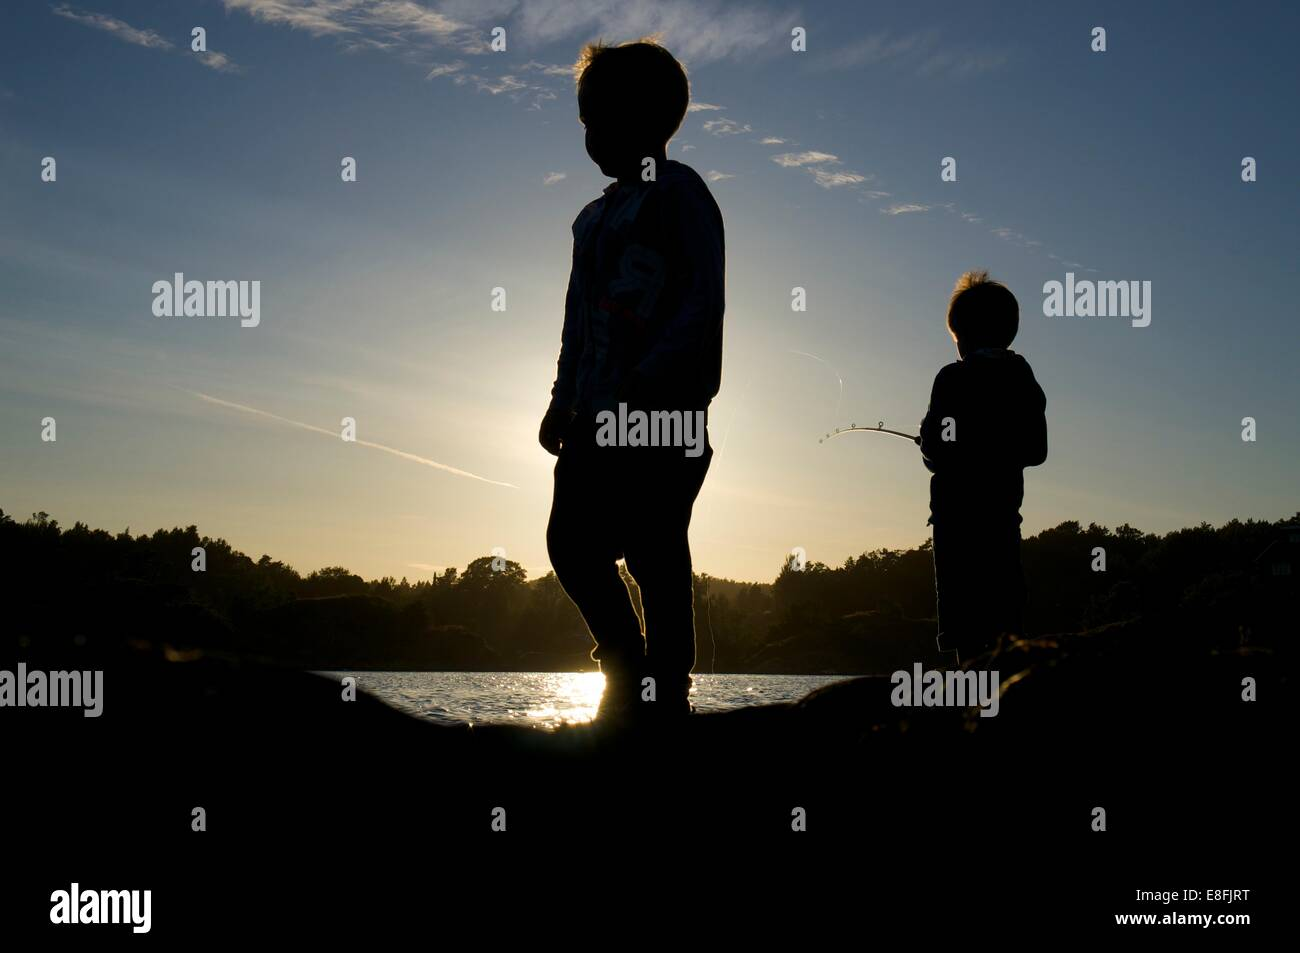 Silhouette of two boys fishing at sunset, Tromoy, Arendal, Norway - Stock Image